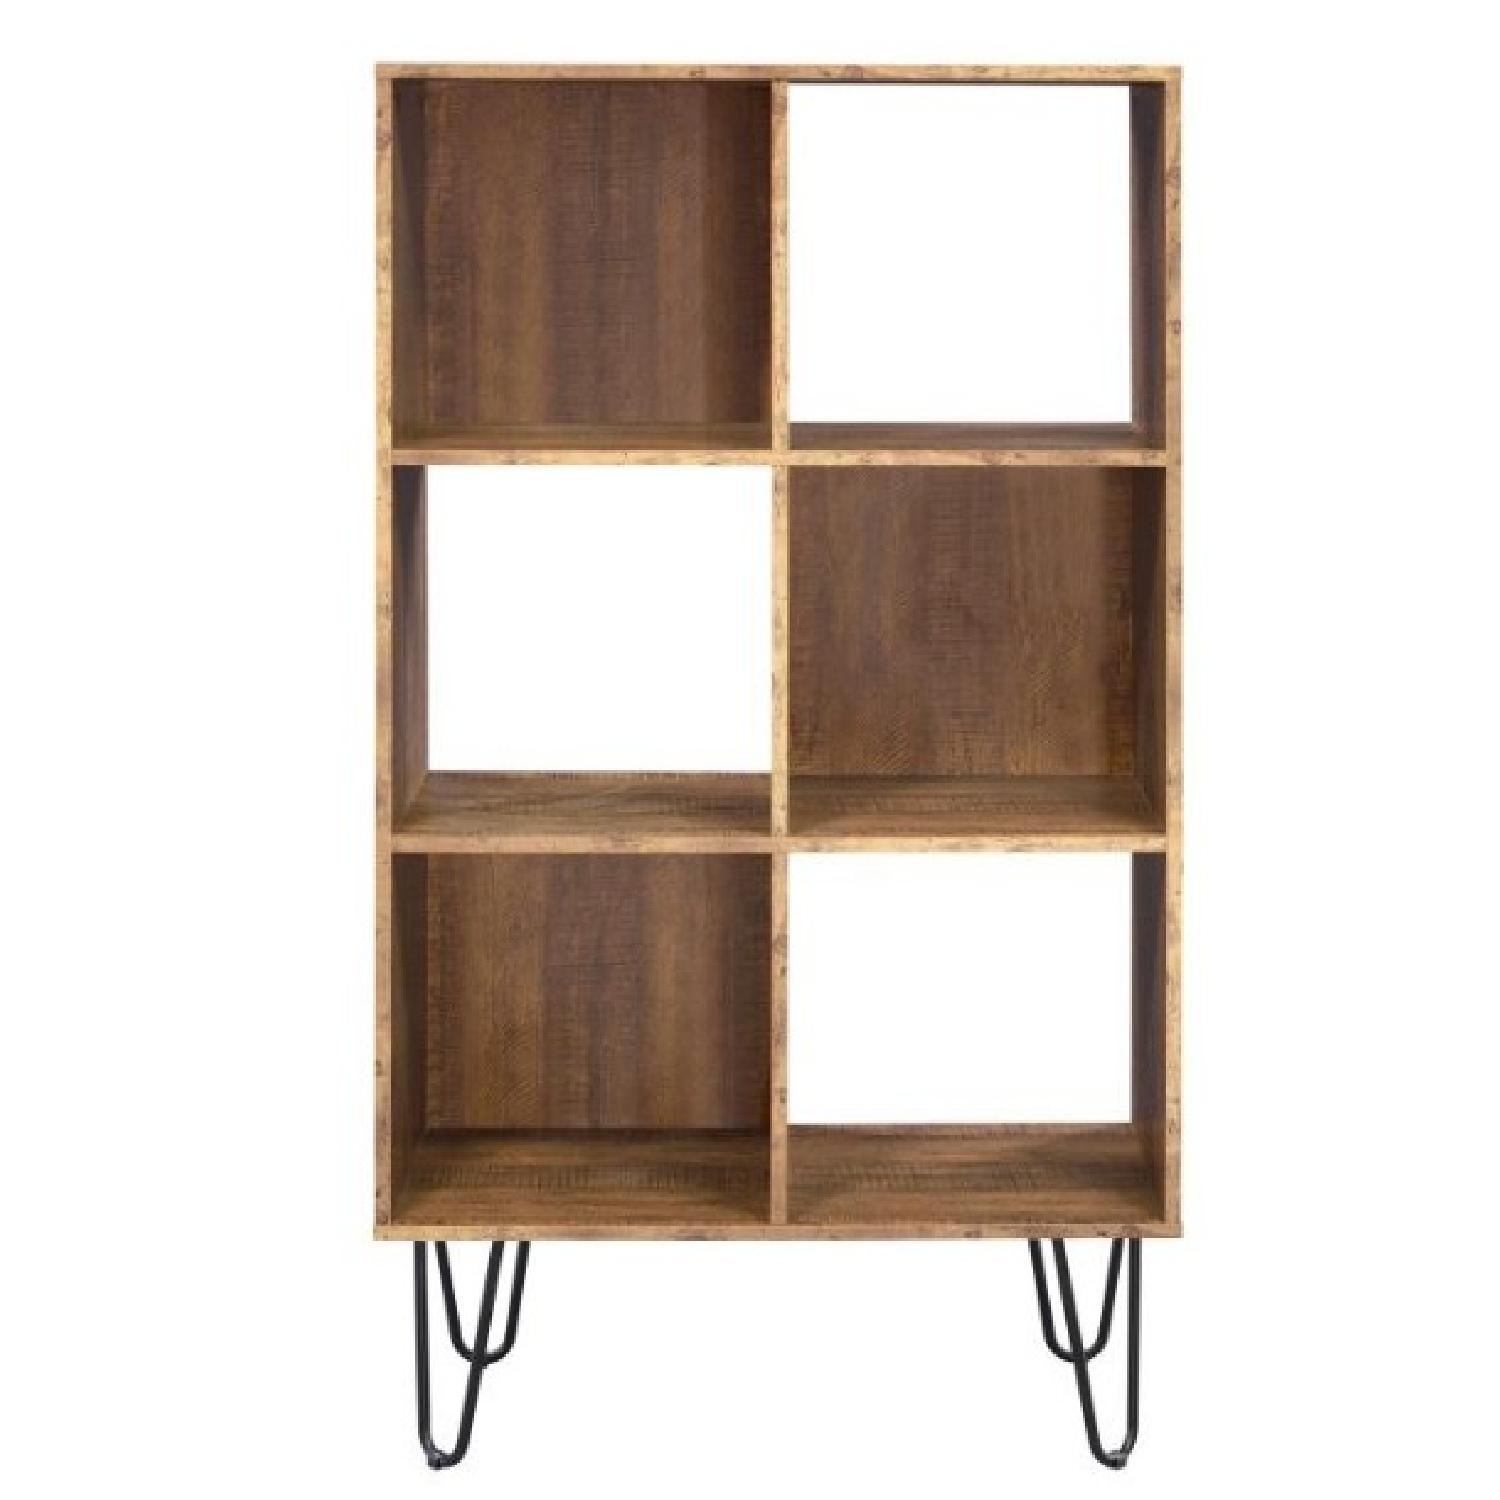 Bookcase in Rustic Amber w/ Finish & Hairpin Legs